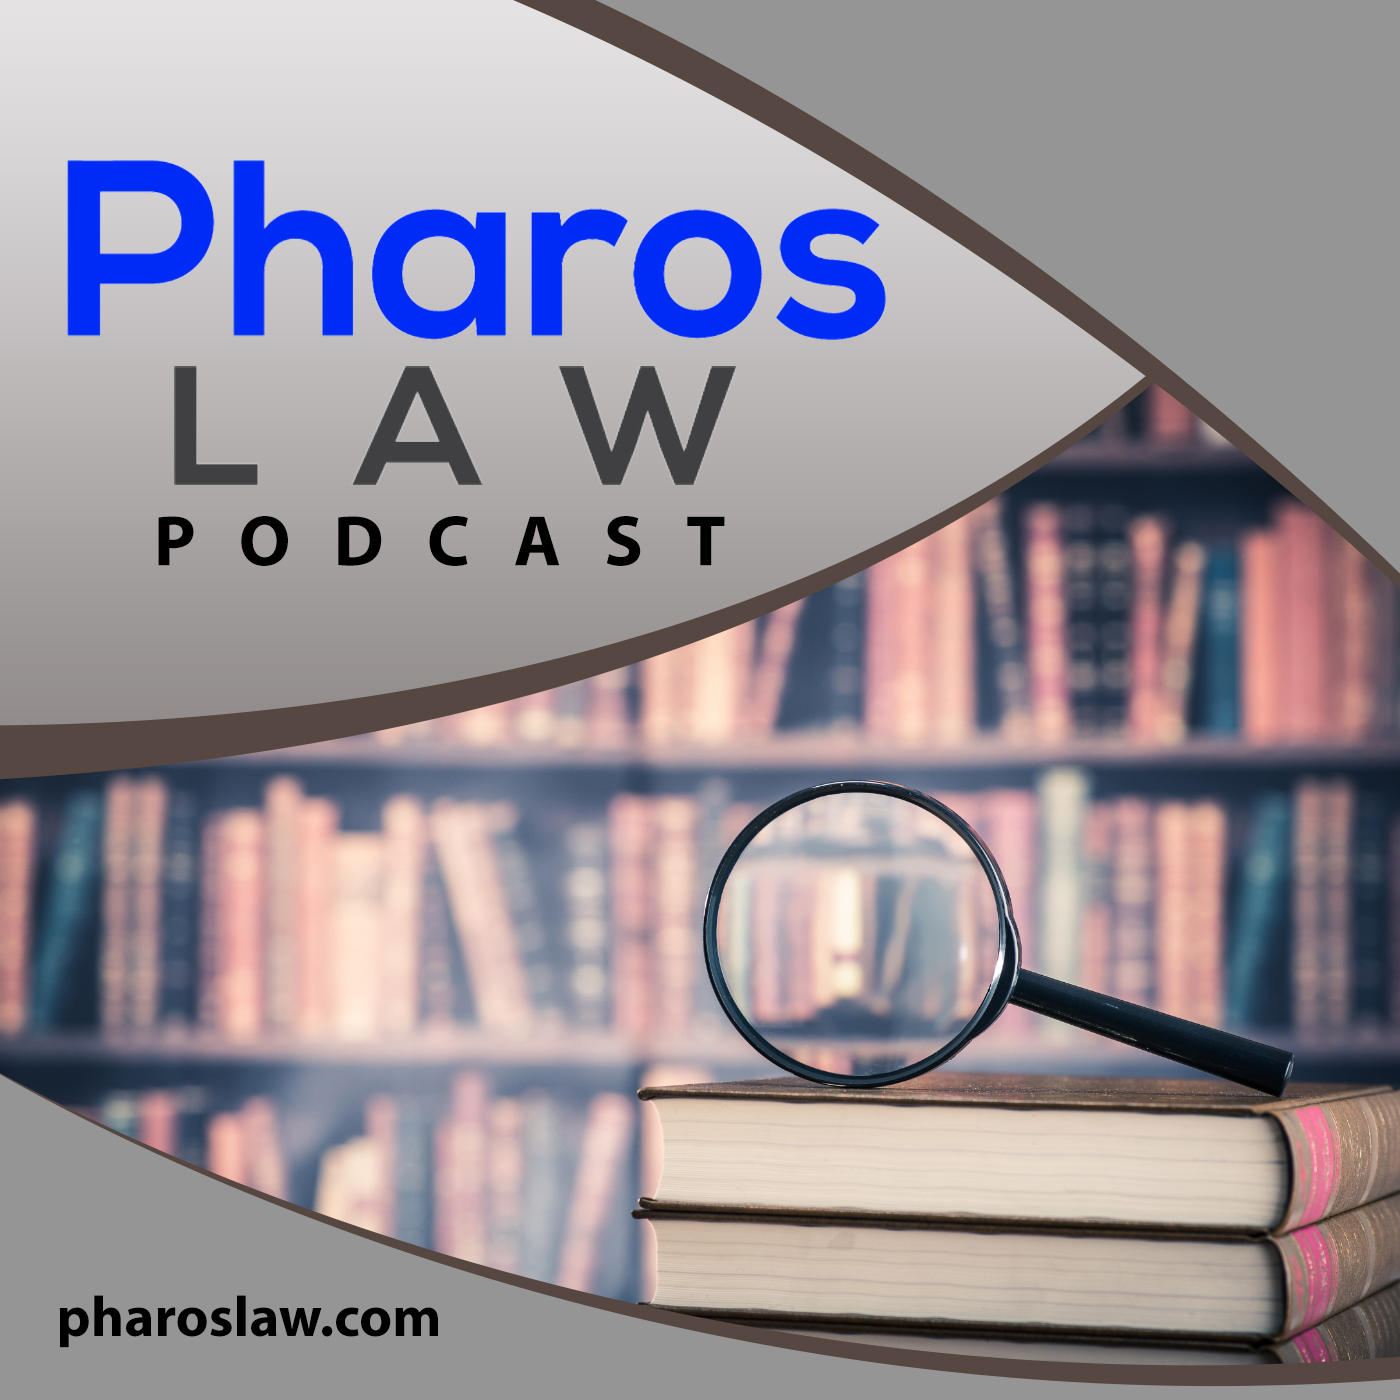 Pharos Law Podcast–Sticking a fork in the toaster (the estate planning equivalent)